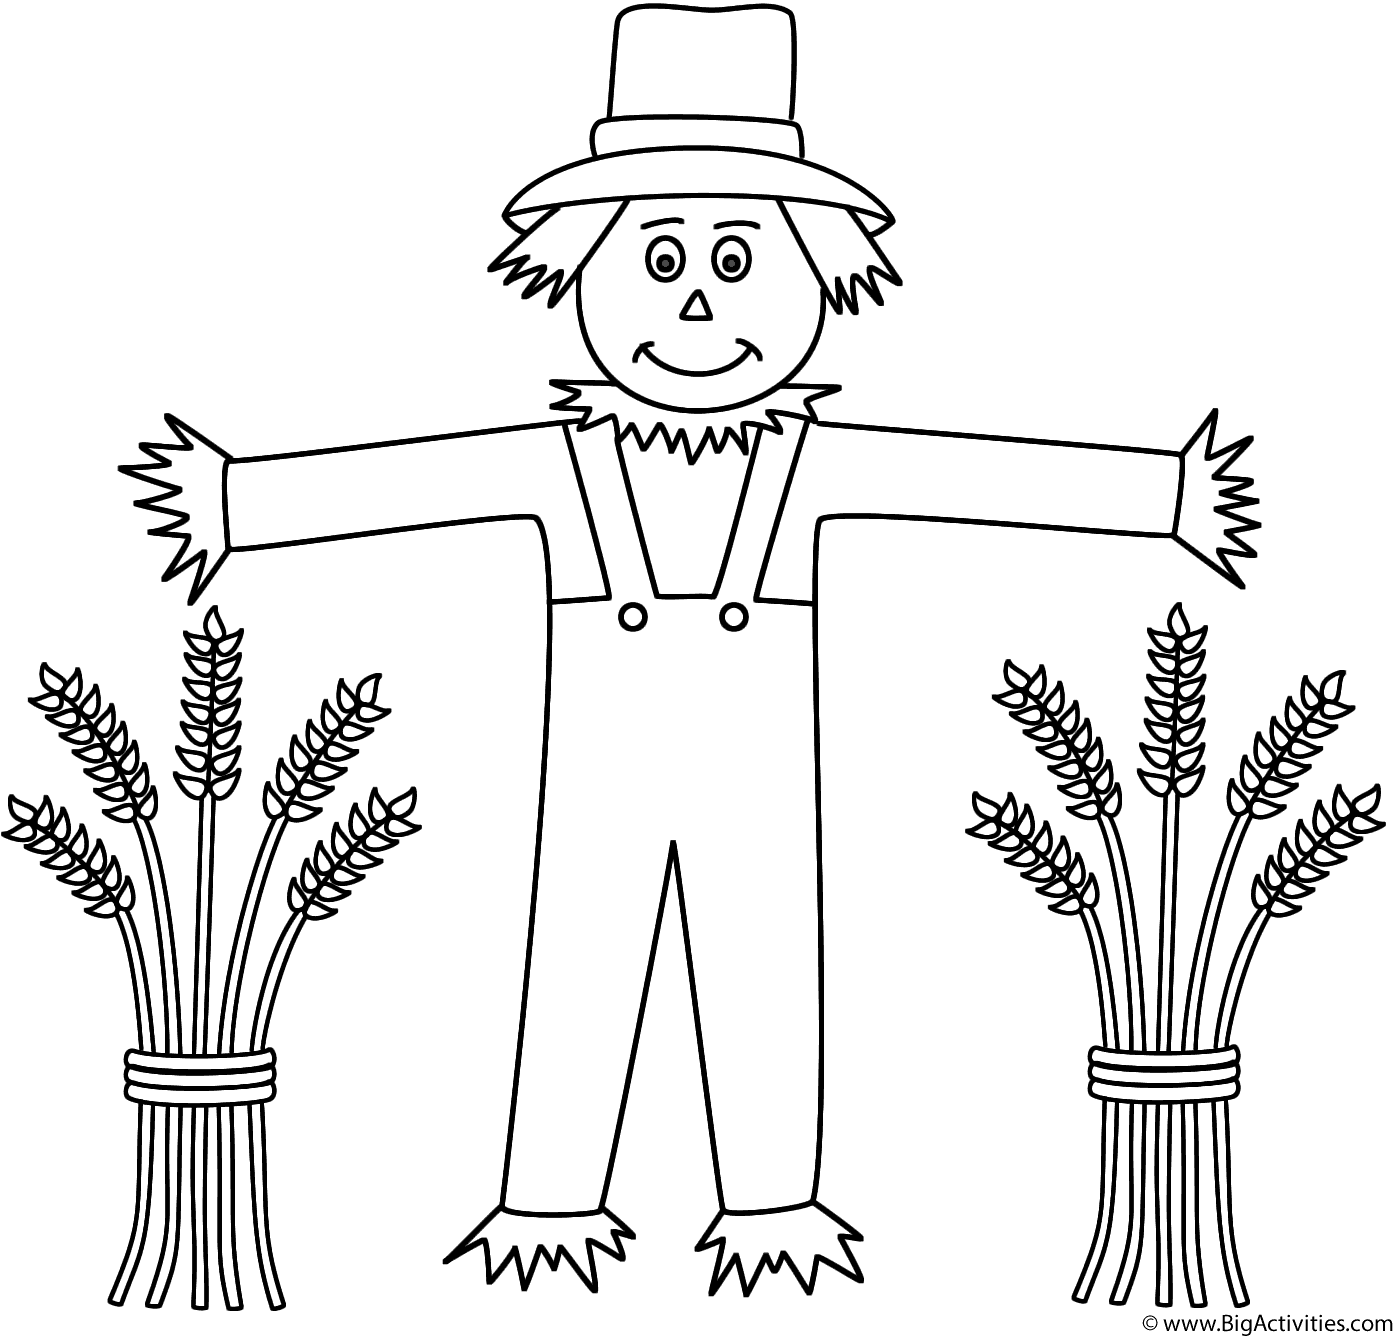 Scarecrow With Wheat Sheaves